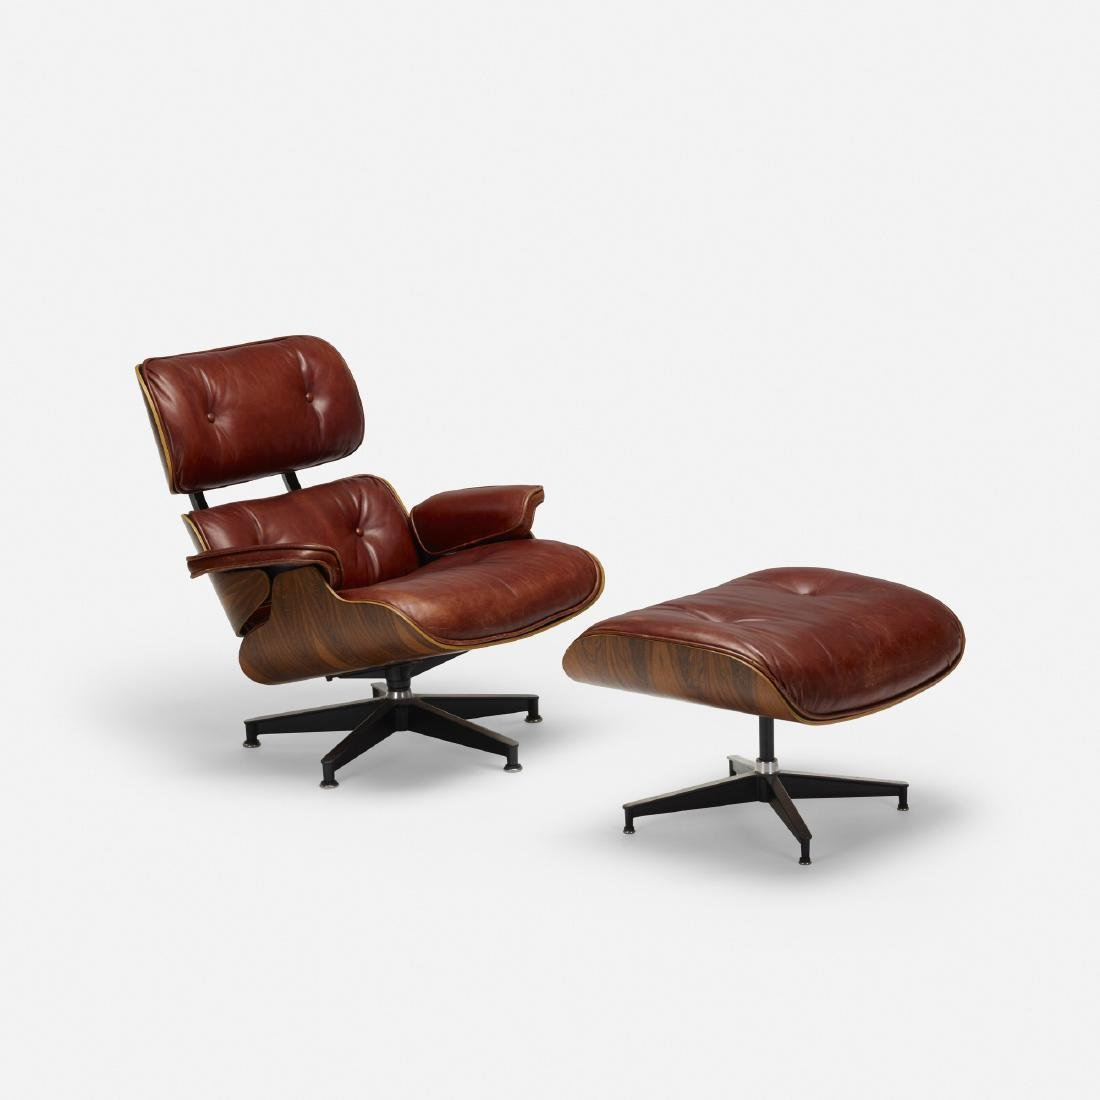 Charles and Ray Eames, Special-order 670 and 671